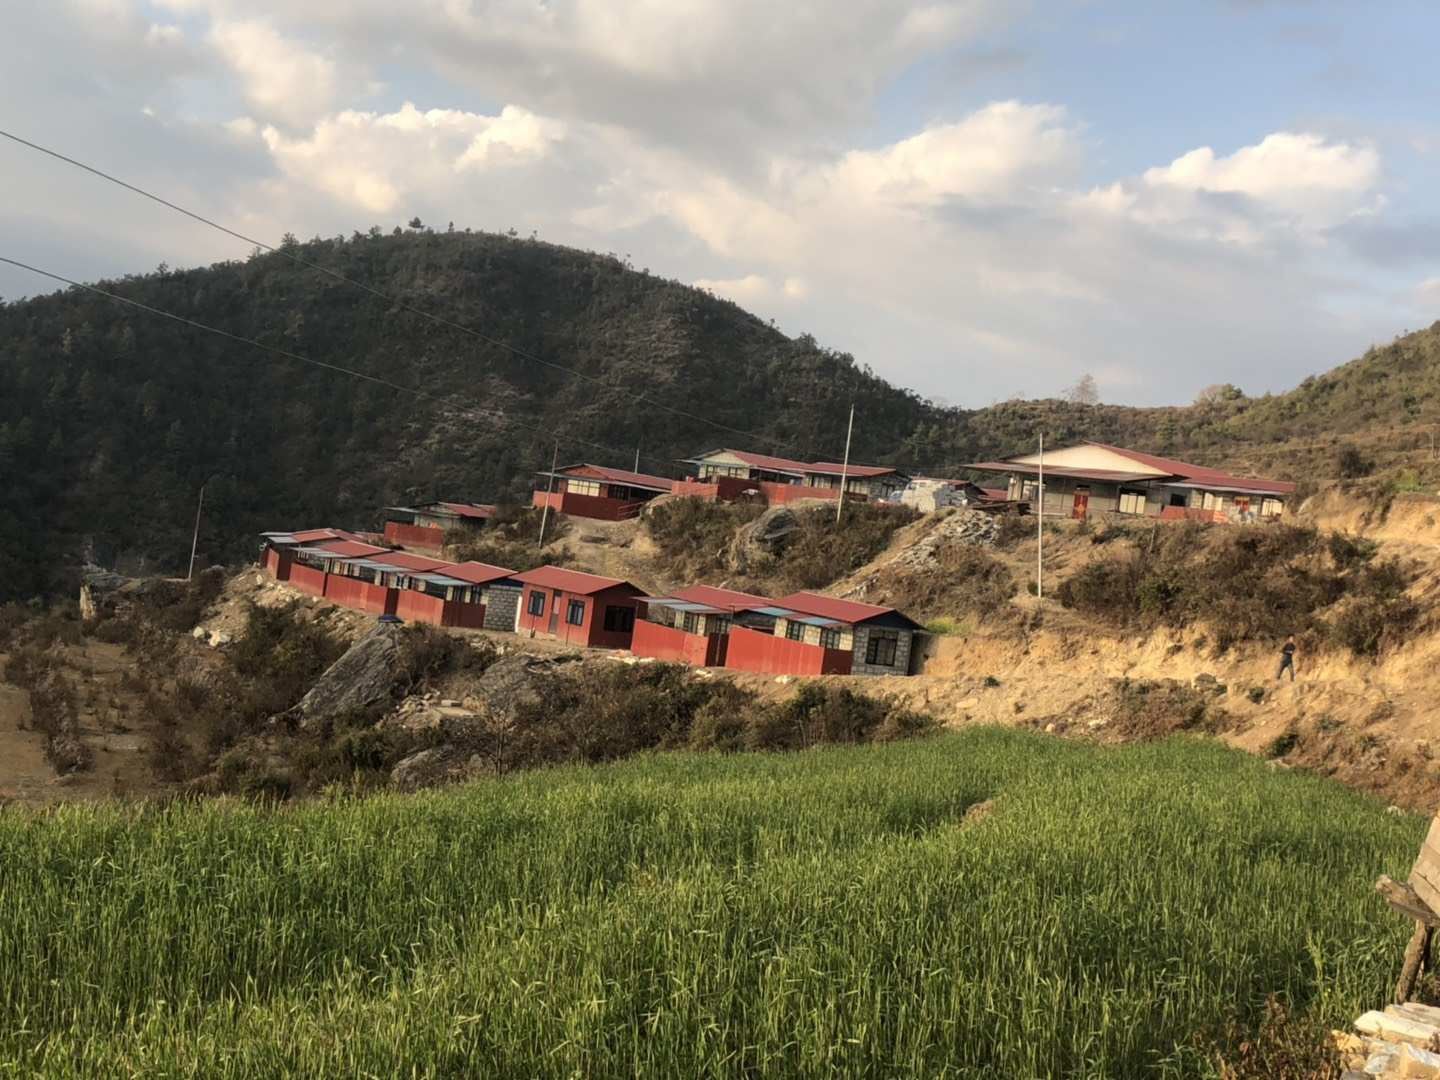 Kagyu Nunnery Accommodation Now Complete for Nepal Nuns